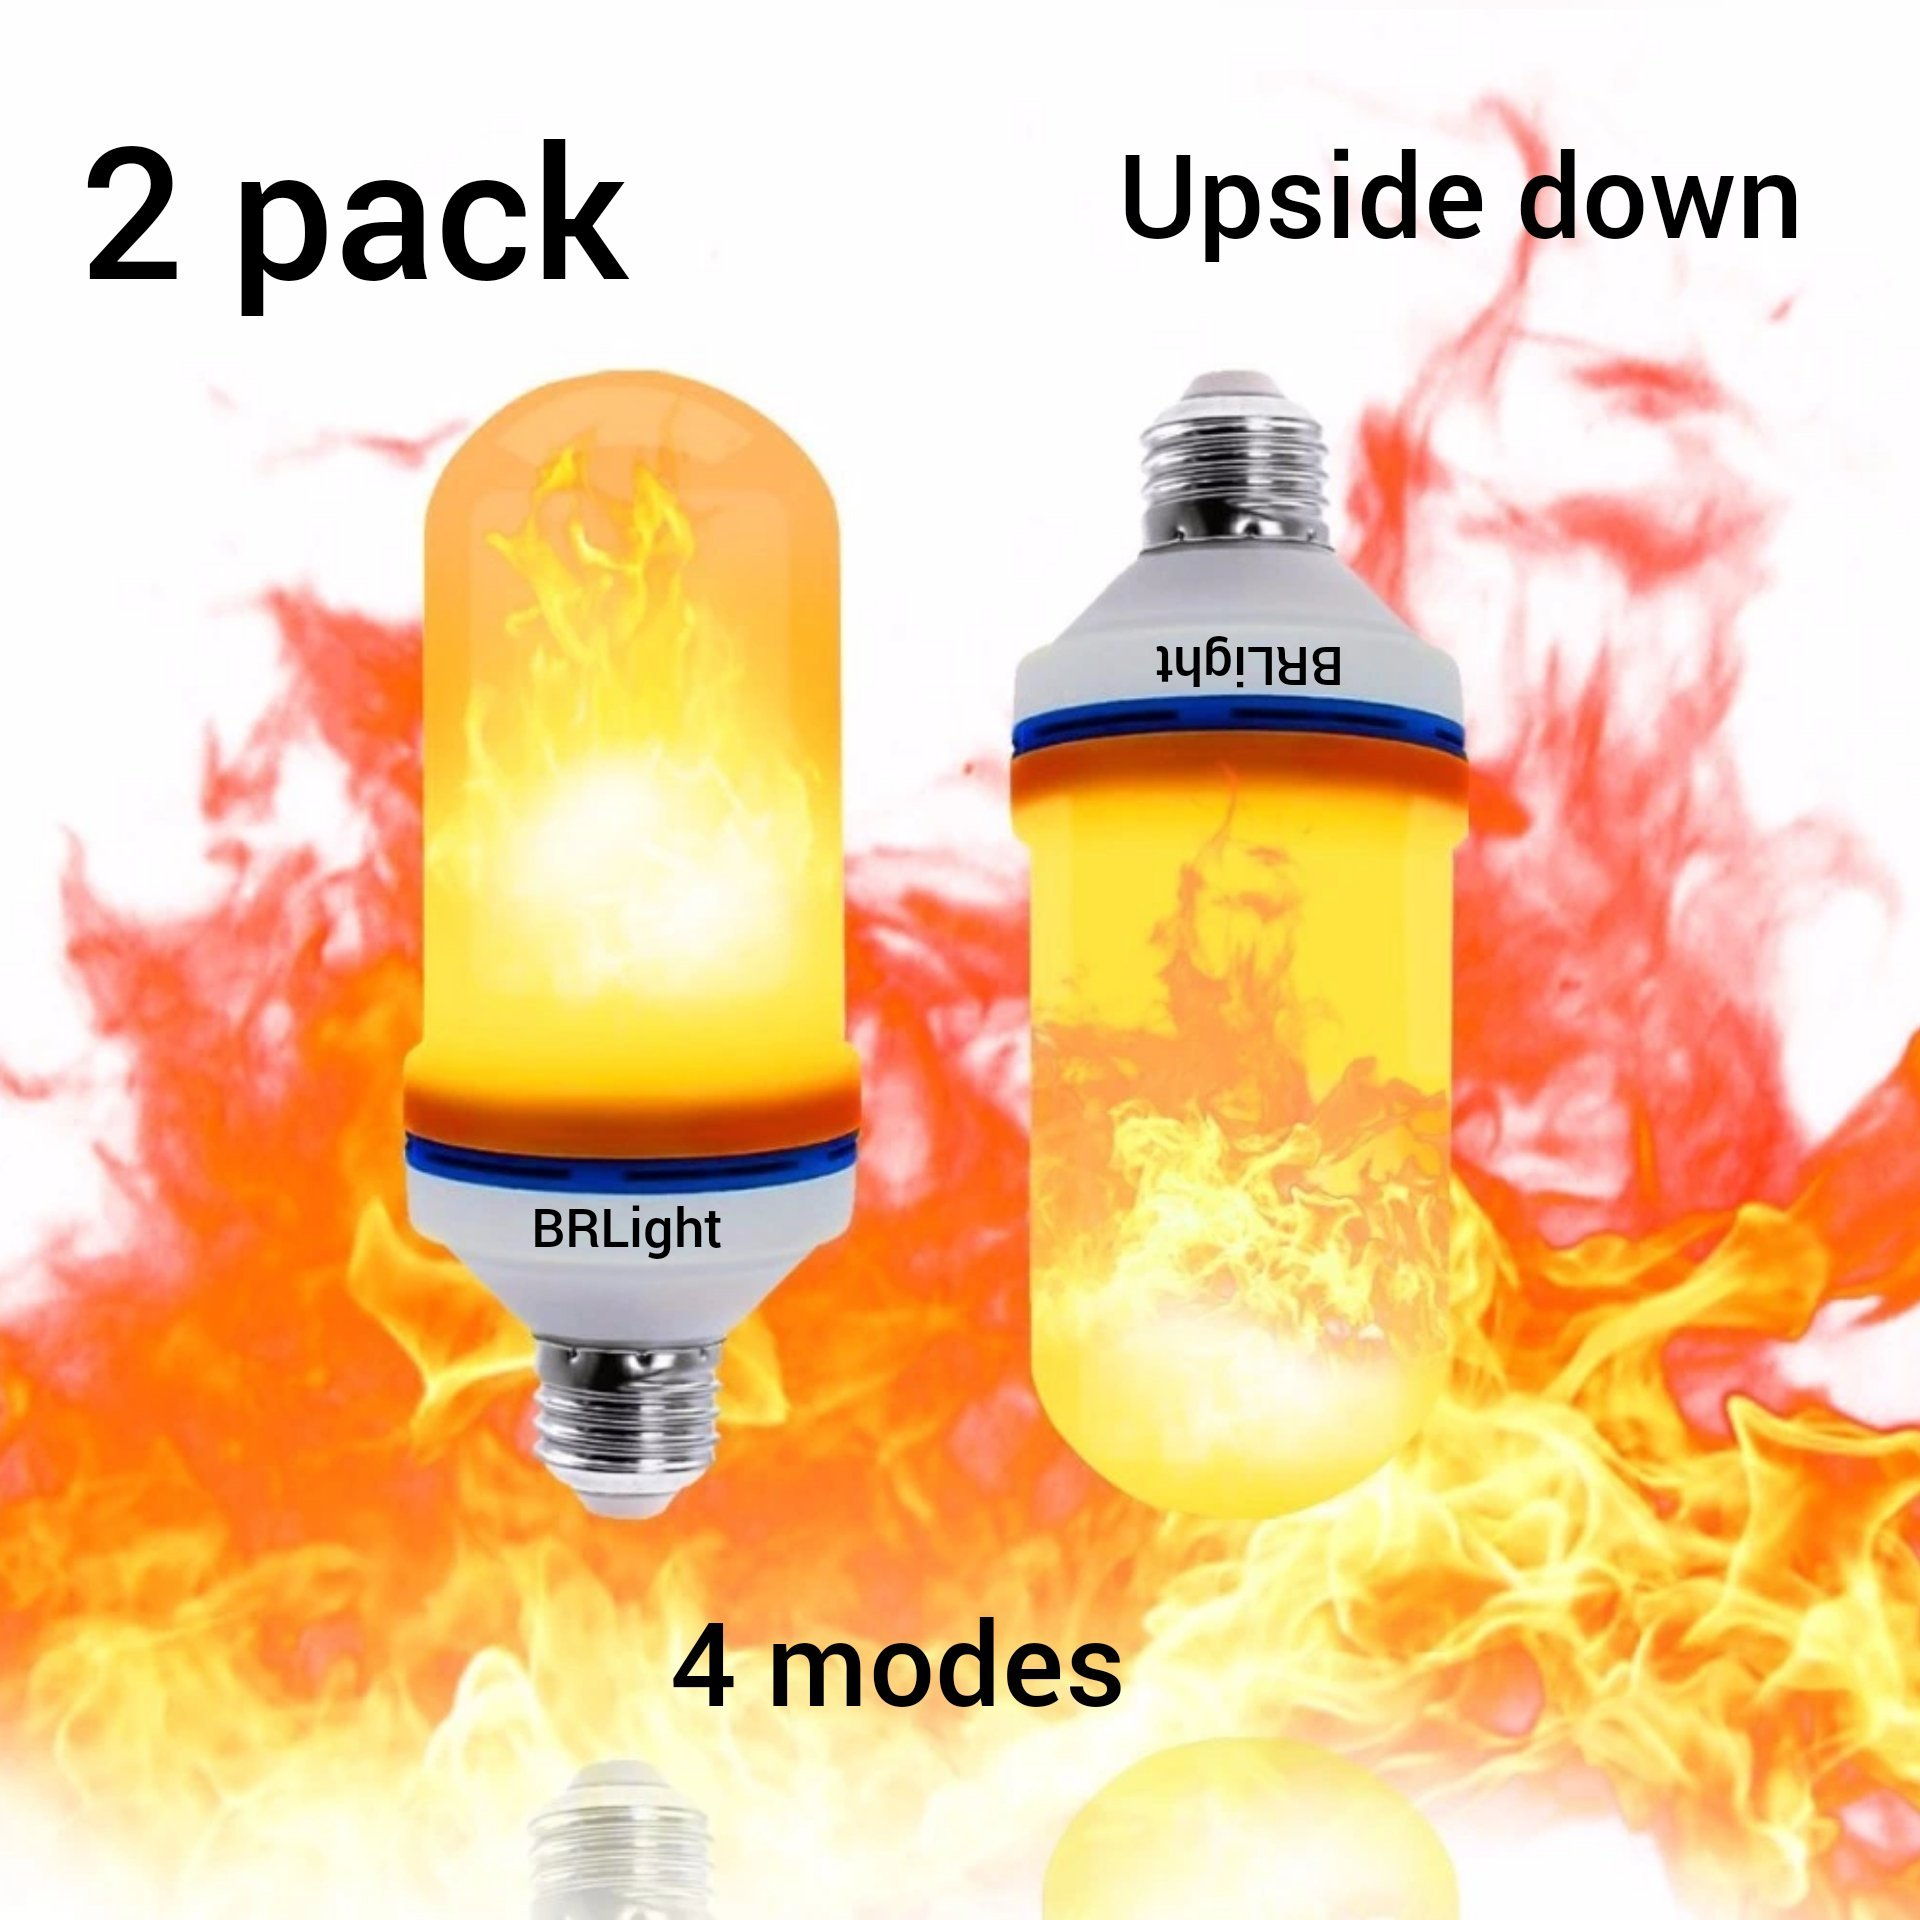 [2 Pack] Upside Down Feature Led Flame Effect Light Bulbs New Heat Sink Technology E26 105pcs 2835 LED Beads Decorative Light Atmosphere Lighting Vintage Flaming Lamp for Home by BRLight